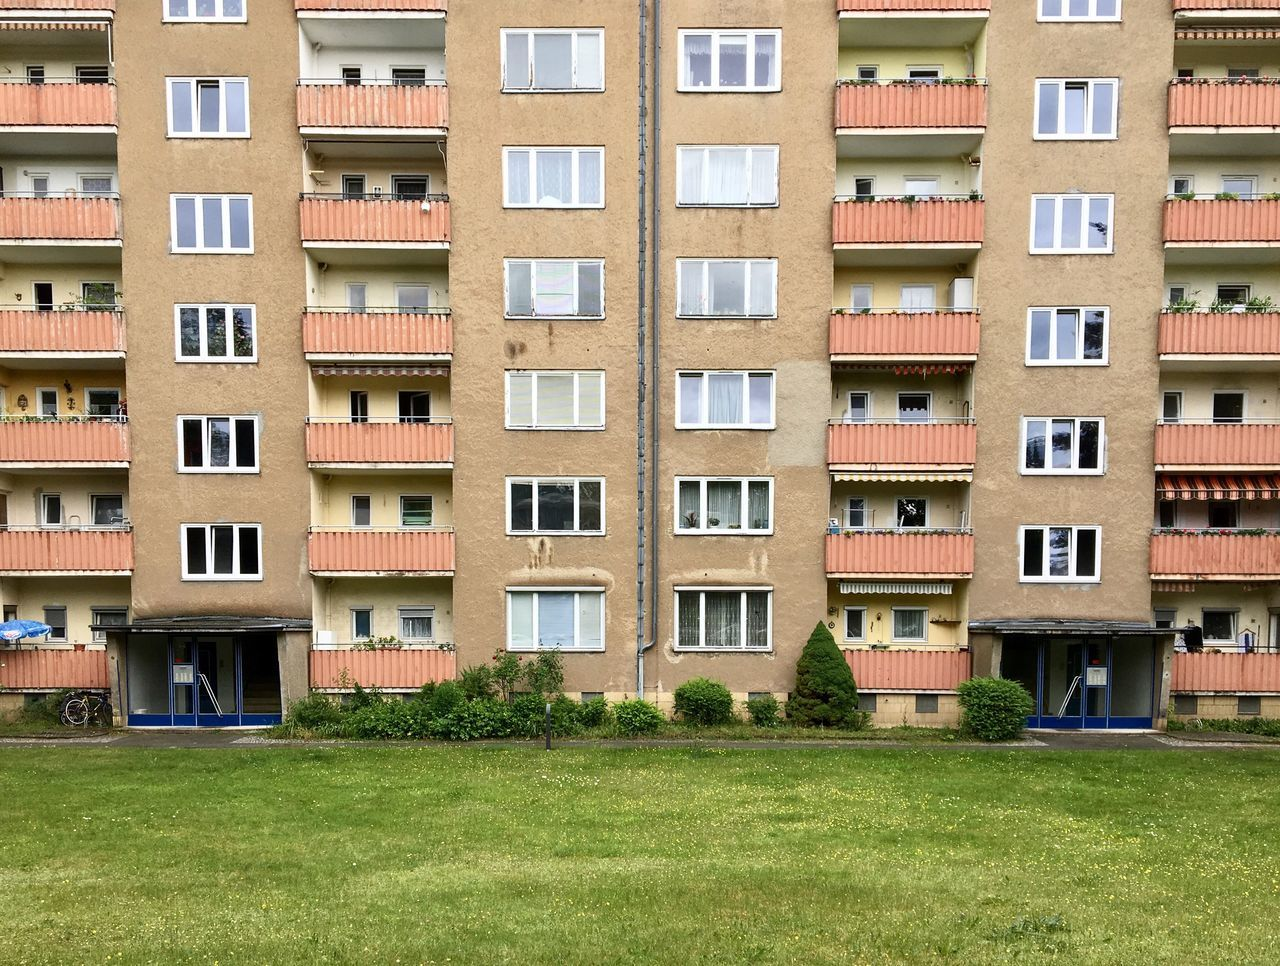 Symmetric living Community Residential Building Apartment House Architecture_collection Architecturelovers Same Same But Different Lifestyles Architecture Façade Urban Geometry Urban Exploration Urban Architecture Built Structure Berliner Ansichten Urbanphotography Symmetry